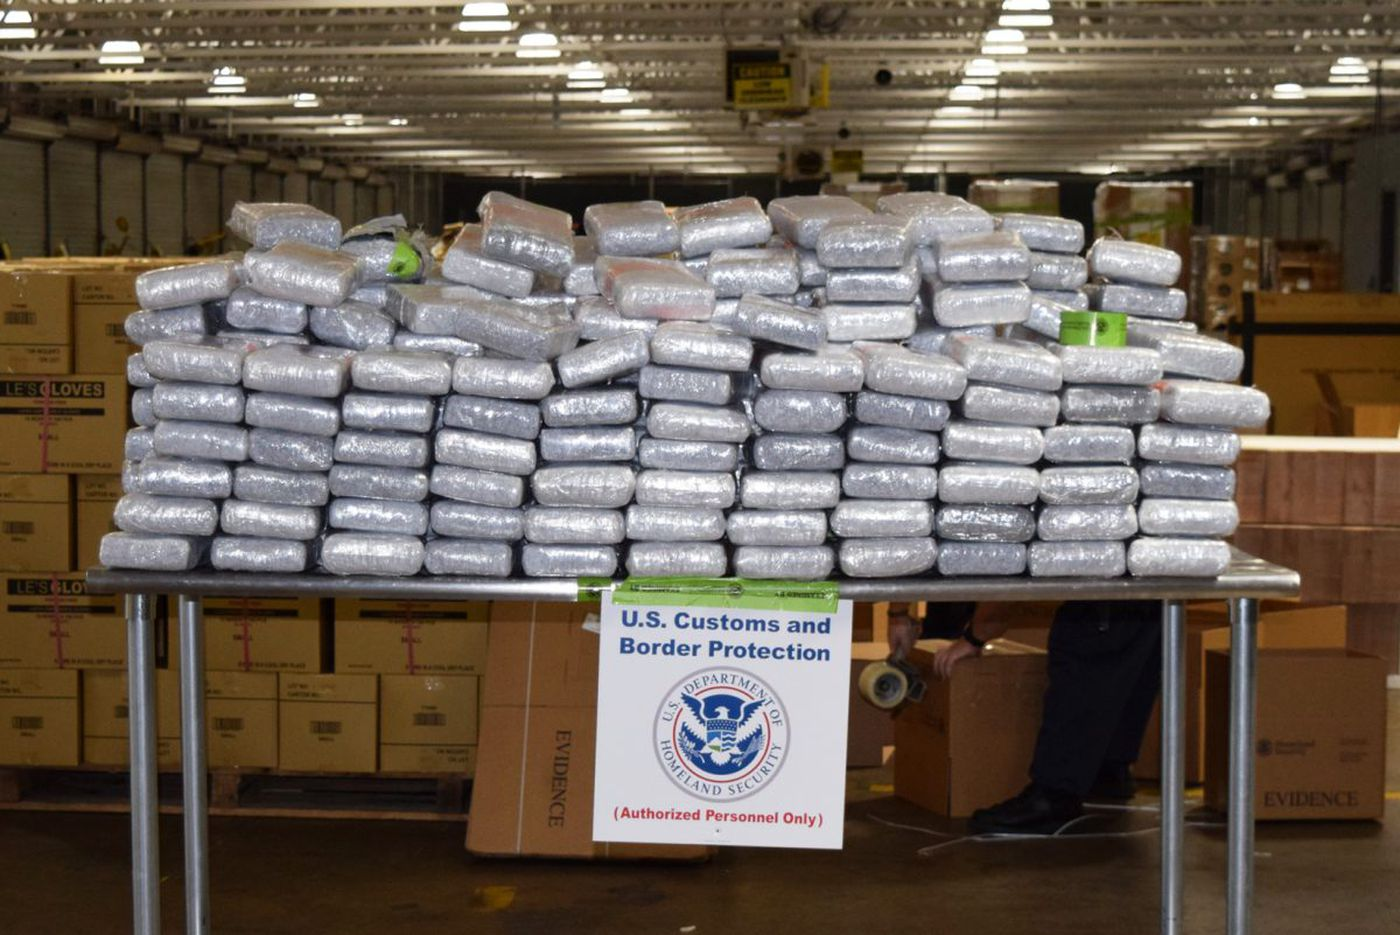 709 pounds of cocaine seized at Port of Philadelphia facility - the largest haul in 10 years